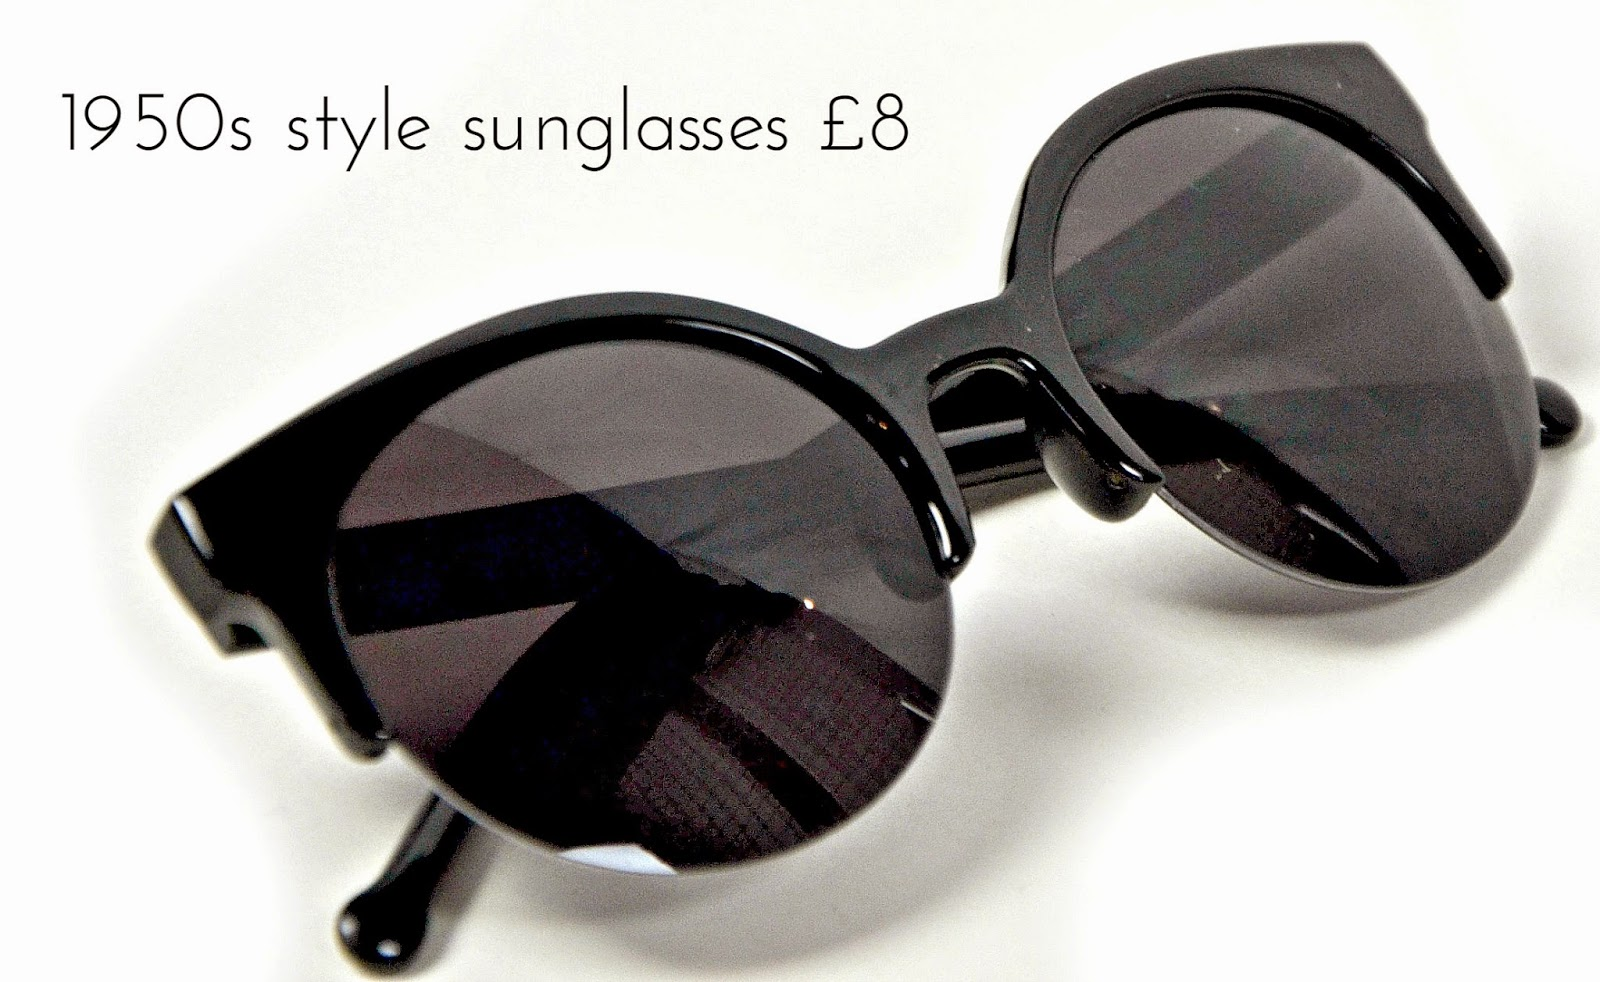 ac10993dc36 Lesley s Girls- Vintage Lifestyle and Fashion Blog  Sunglasses hide ...